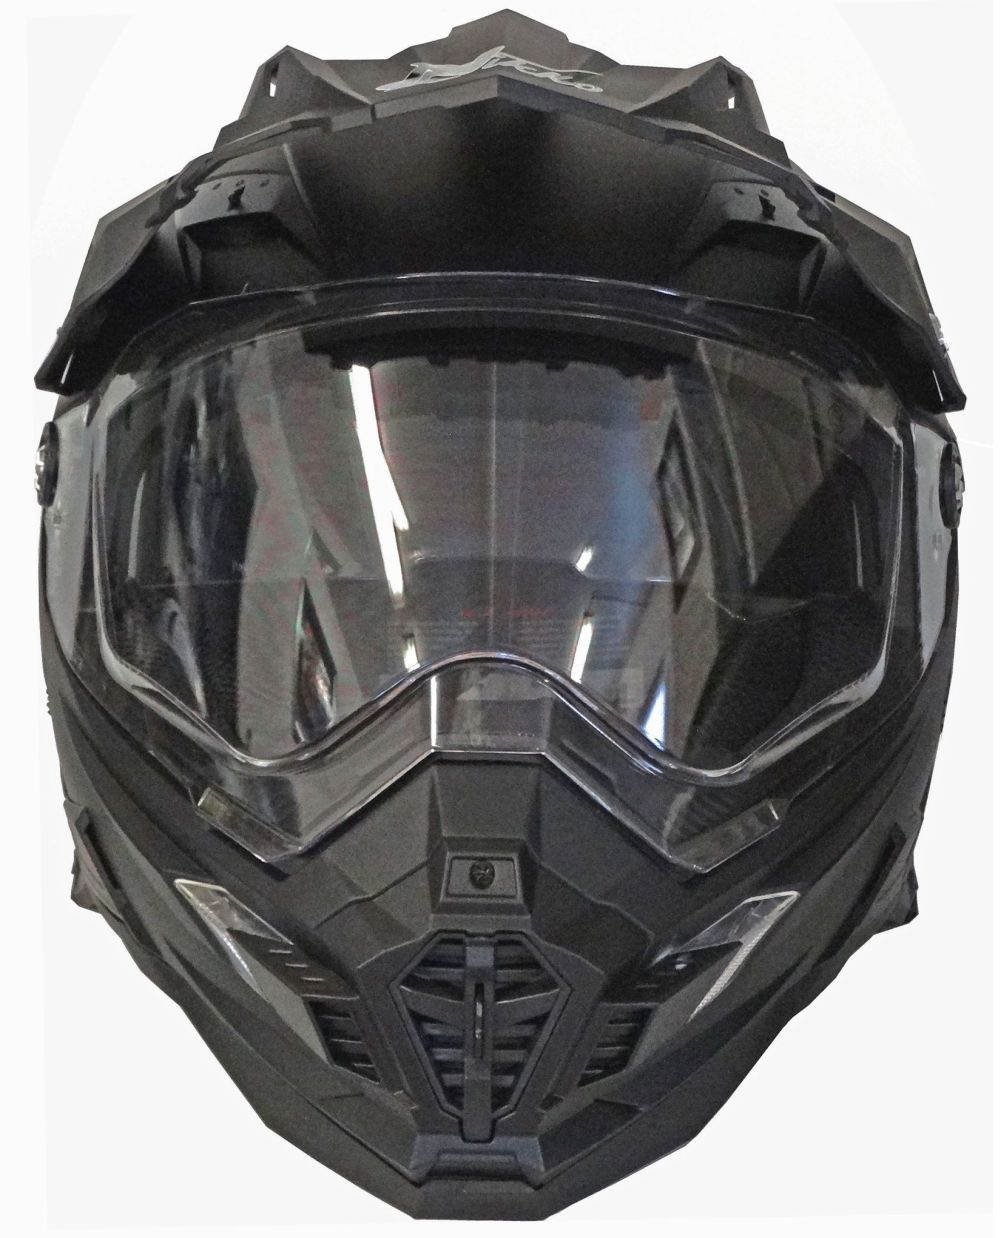 motorradhelm mx enduro quad helm matt schwarz mit visier. Black Bedroom Furniture Sets. Home Design Ideas